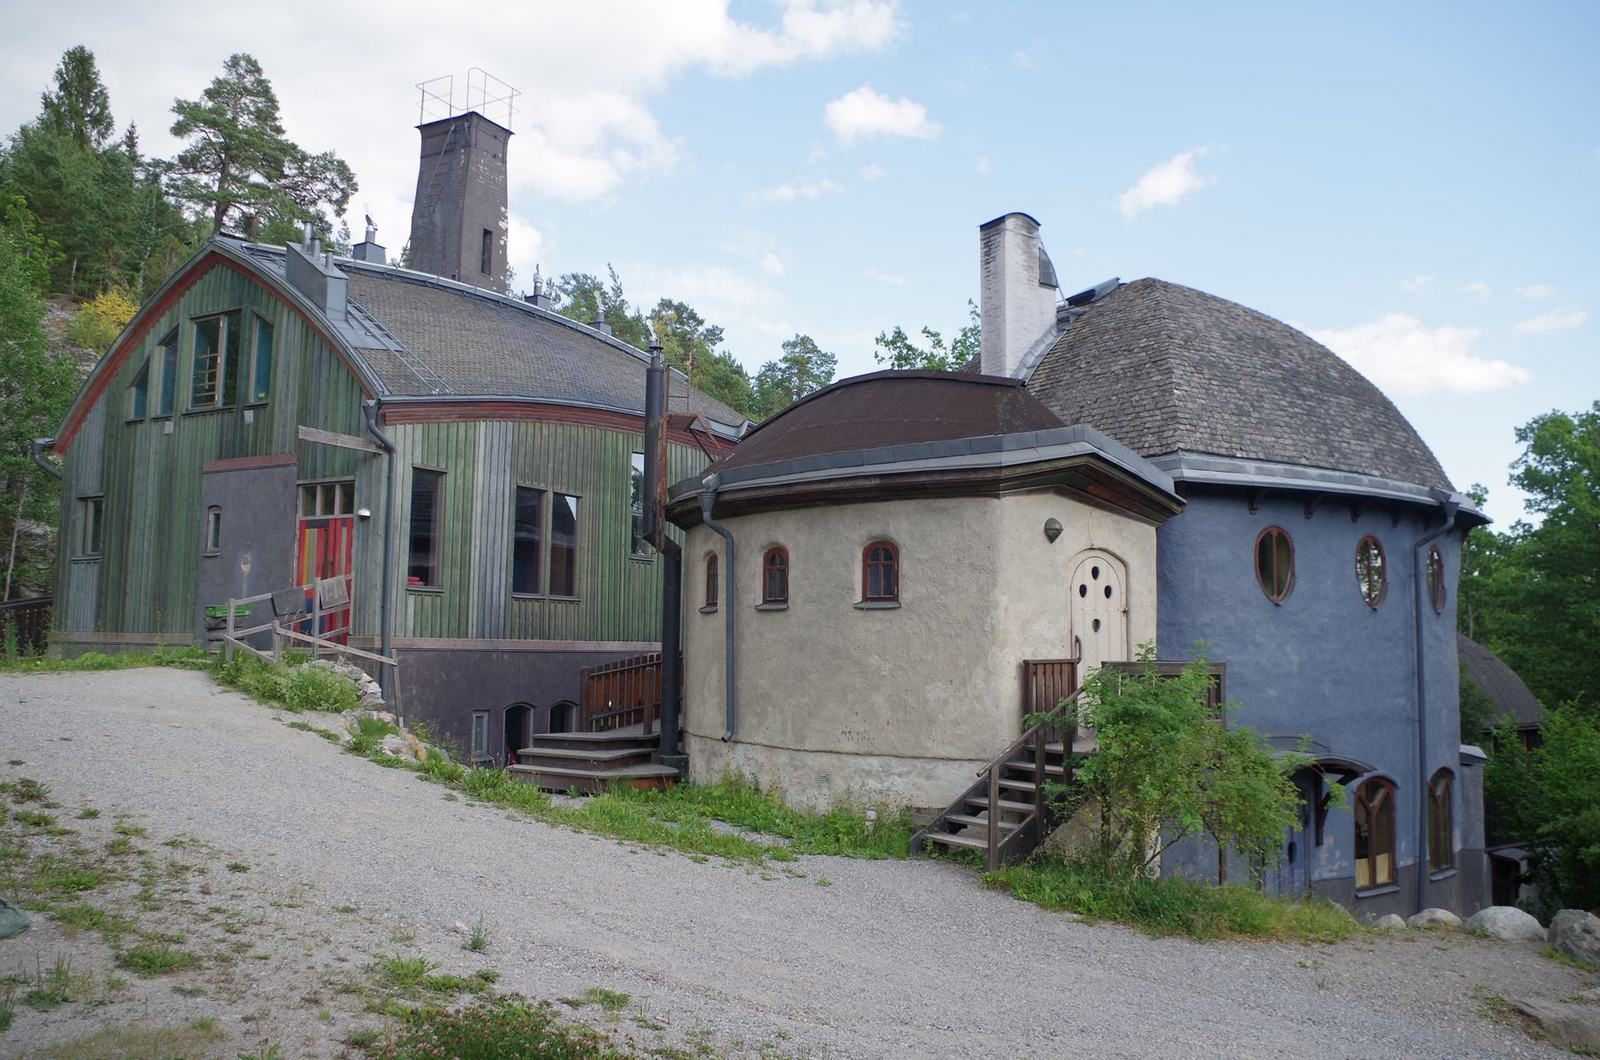 l'école alternative SOLVIK SKOL